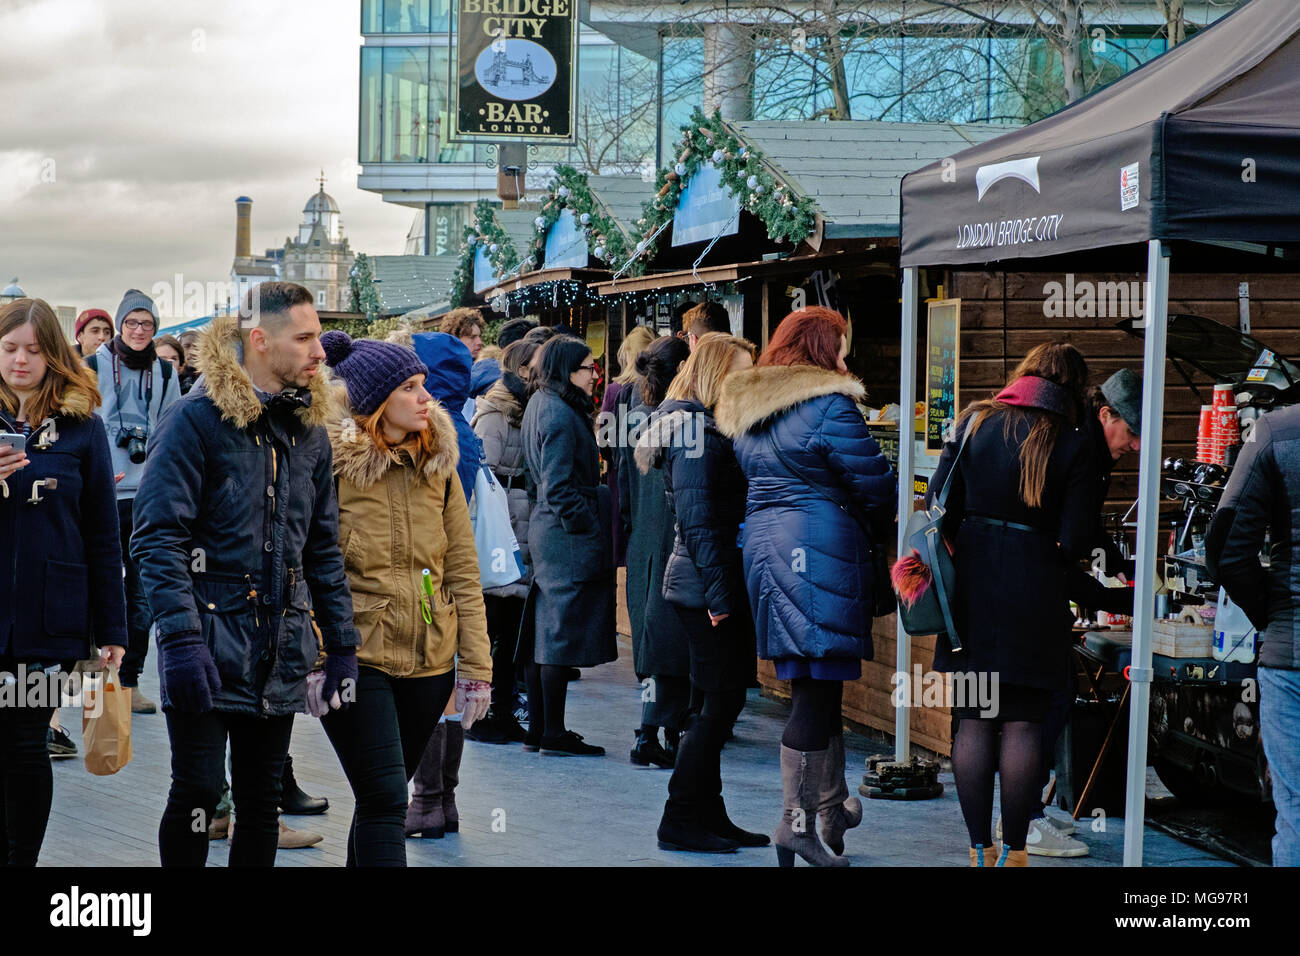 A crowd of people shop & eat at Christmas by the River Open air Christmas Market at London Bridge City, on the south bank of the River Thames, London. - Stock Image